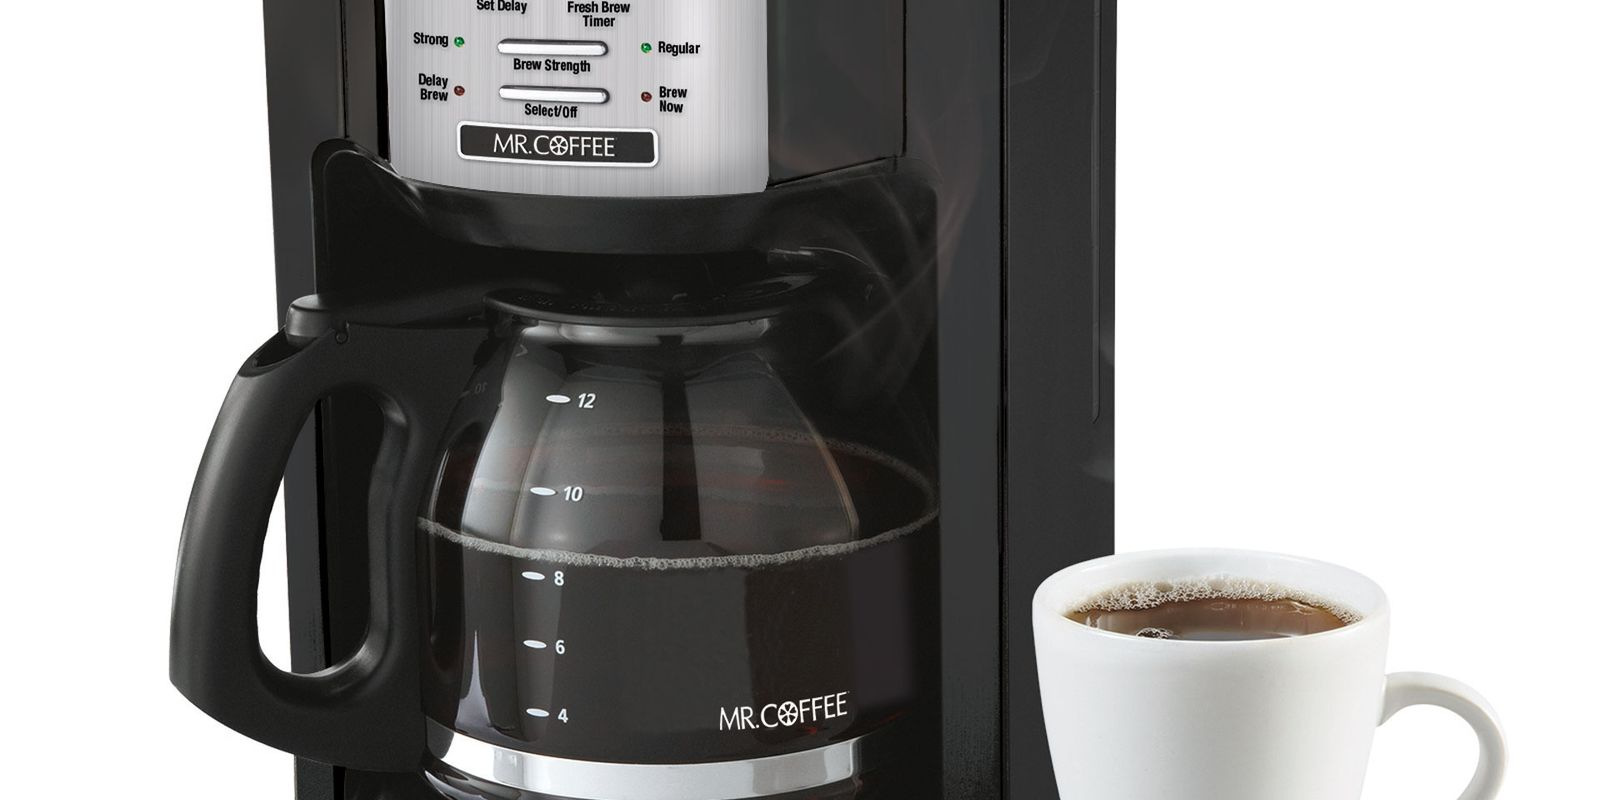 Mr. Coffee 12 Cup Programmable Coffee Maker benefits